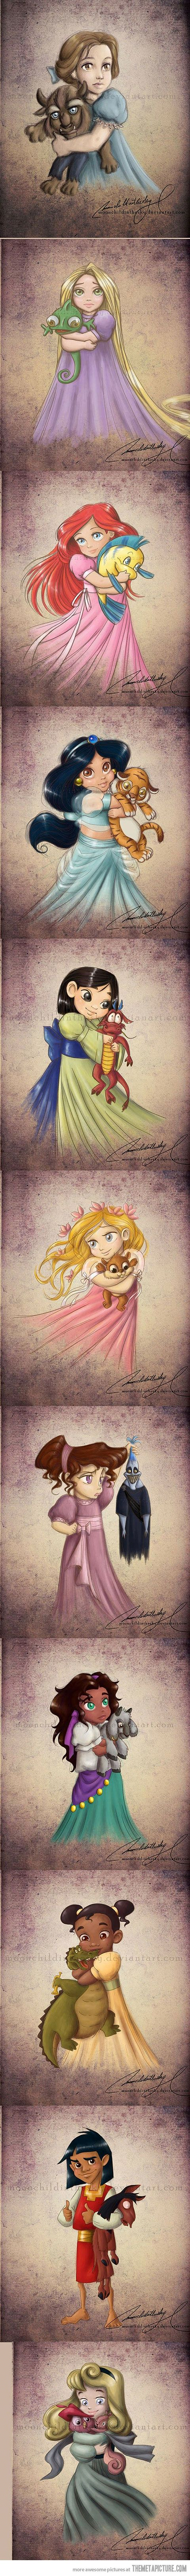 Little Disney Princesses and their pets by moonchildinthesky.deviantart.com  themetapicture.com                  Leave a Reply  Comment      Name